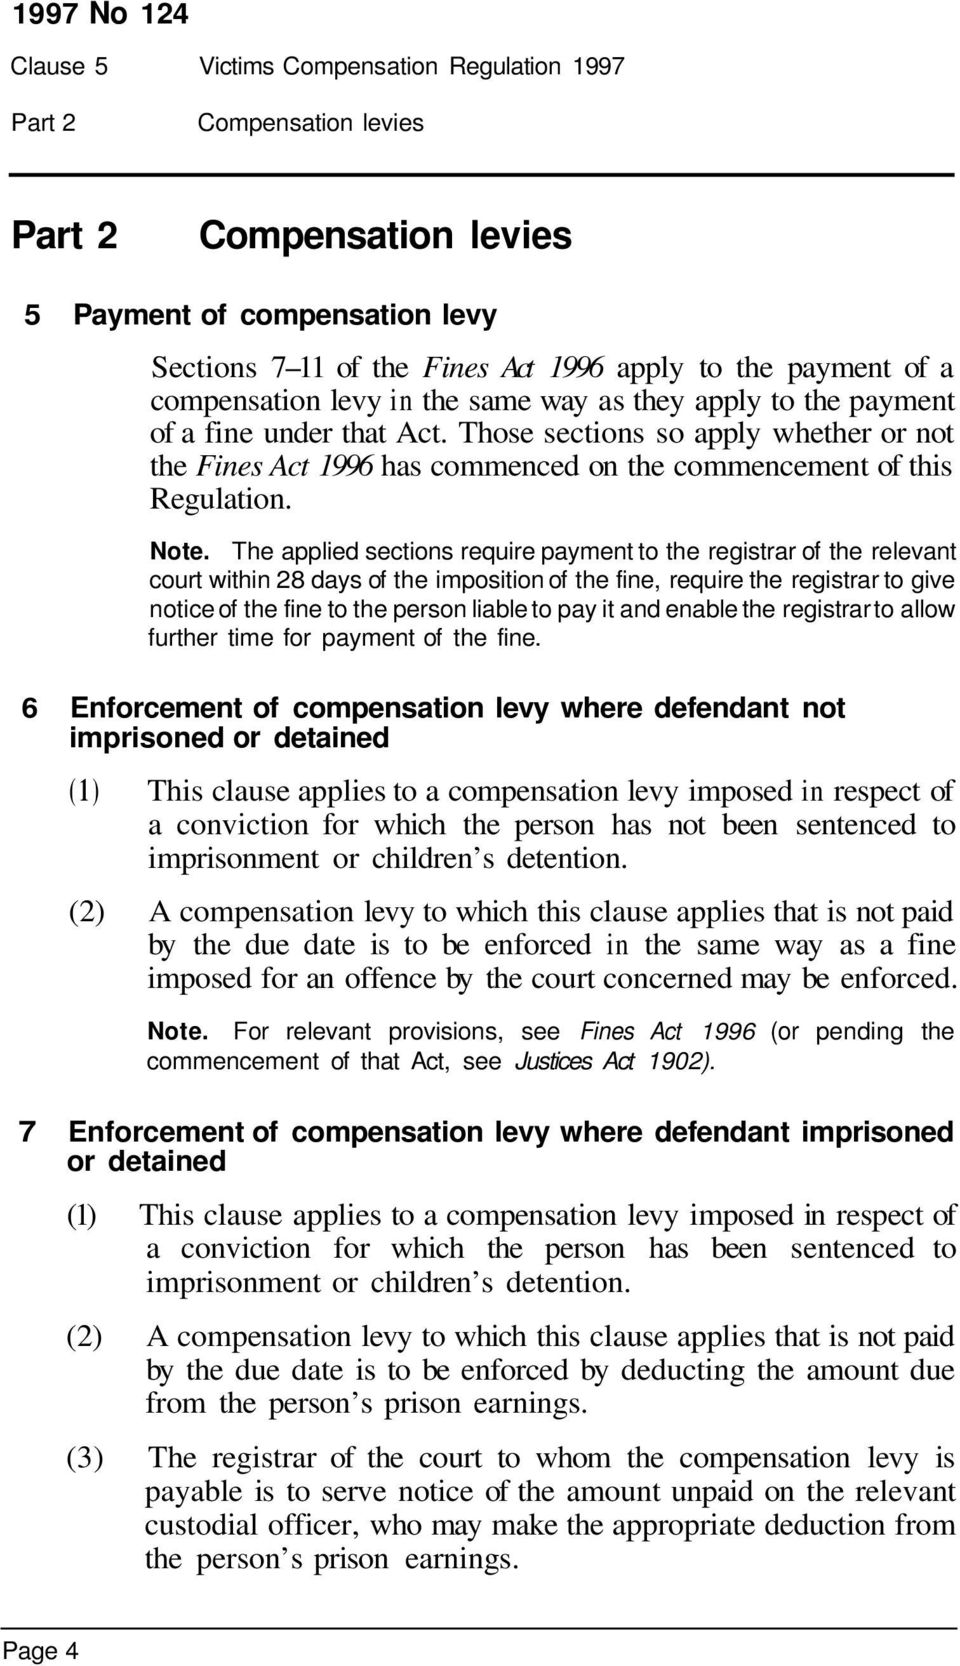 The applied sections require payment to the registrar of the relevant court within 28 days of the imposition of the fine, require the registrar to give notice of the fine to the person liable to pay